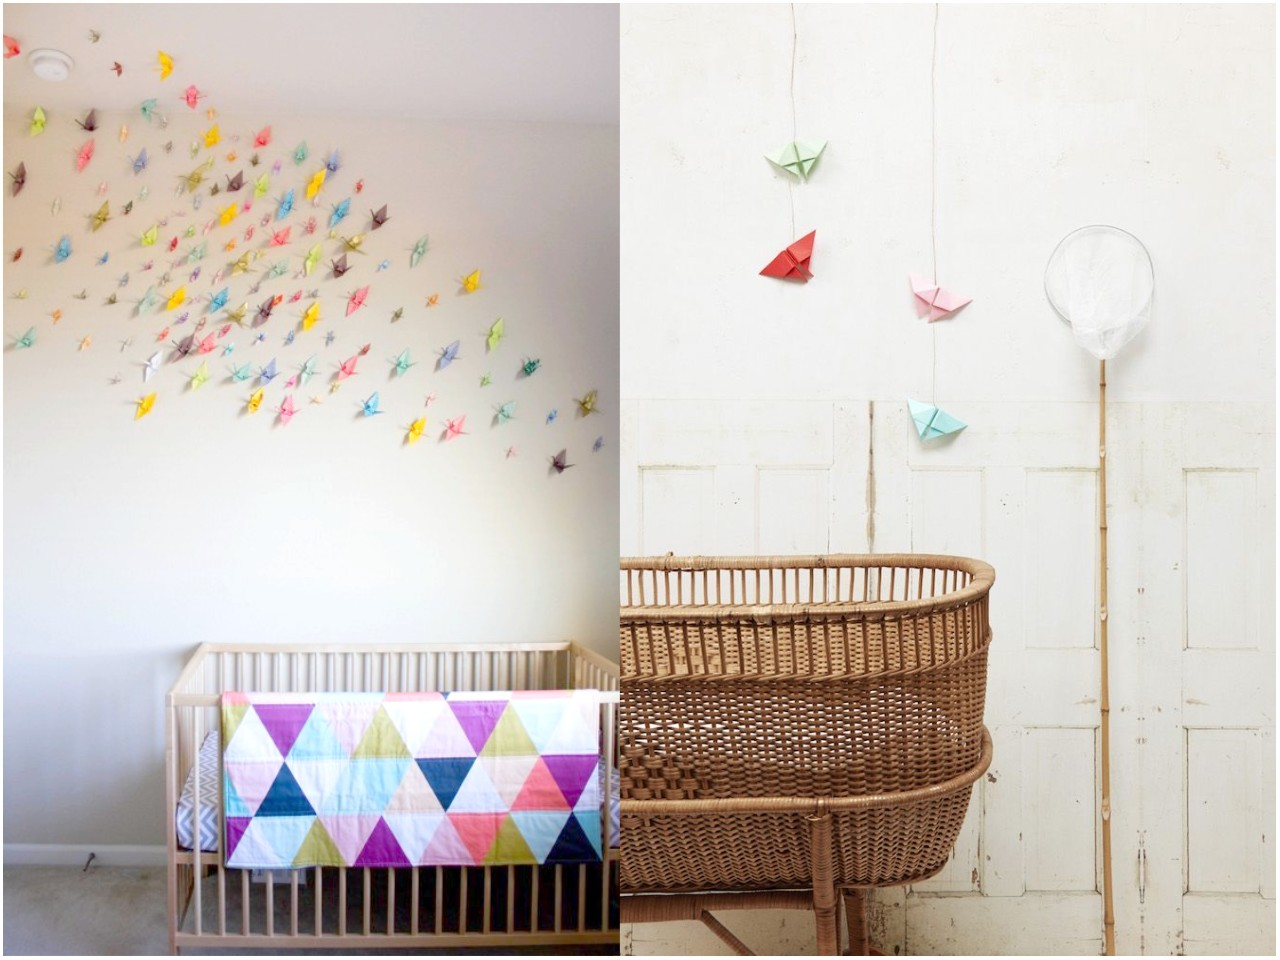 12 ideas econ micas para decorar habitaciones infantiles for Como decorar un dormitorio de bebe